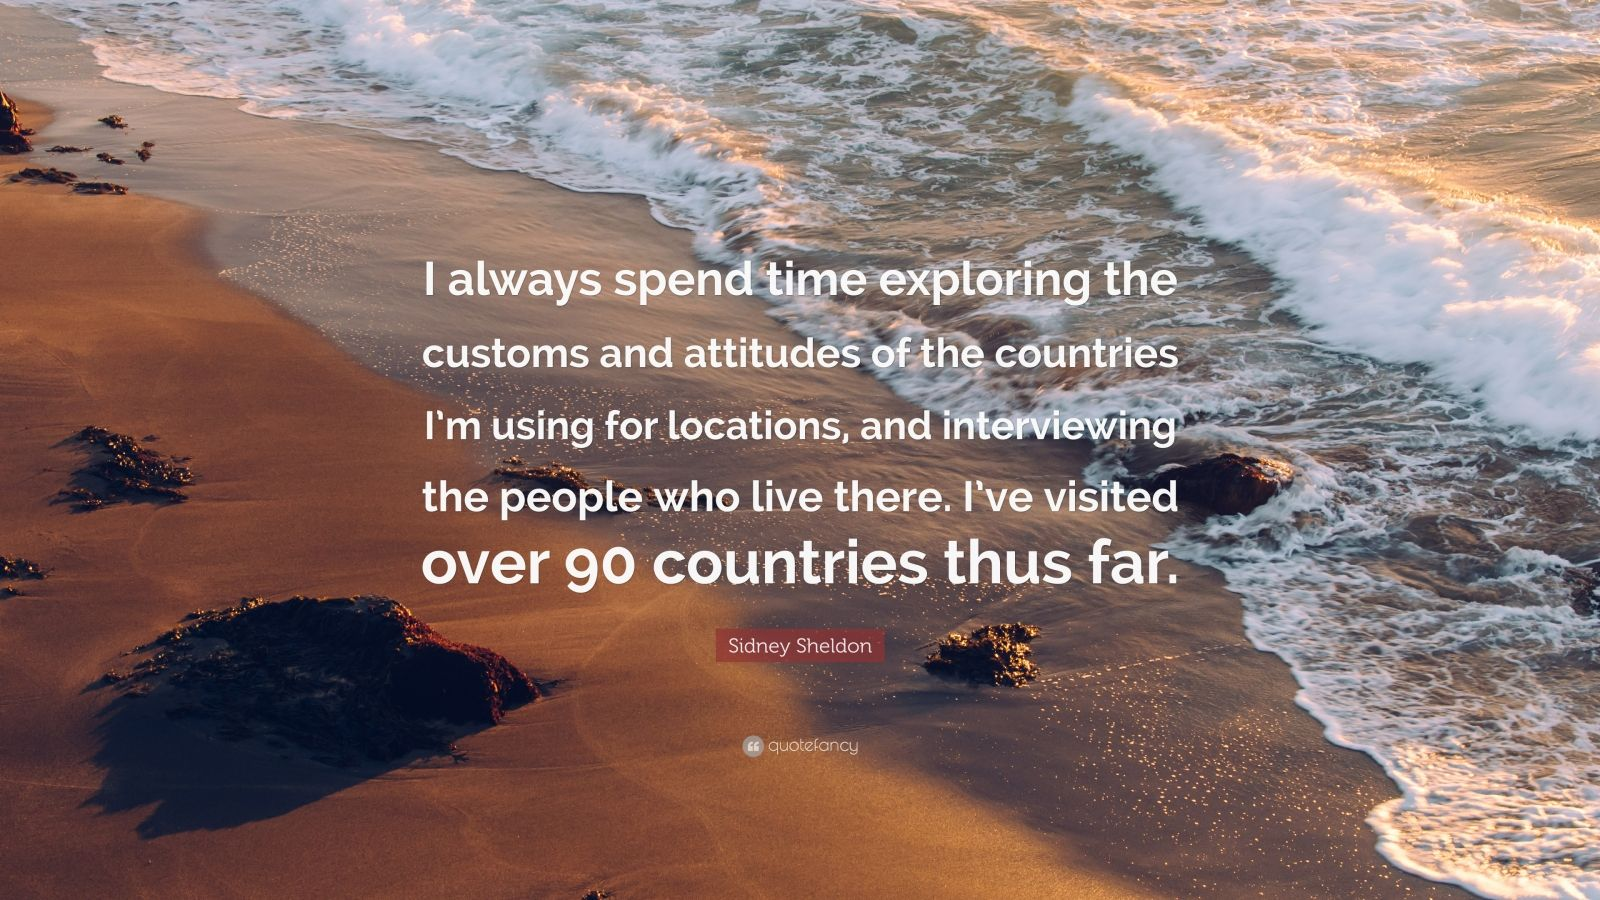 """Sidney Sheldon Quote: """"I always spend time exploring the customs and attitudes of the countries I'm using for locations, and interviewing the people who live there. I've visited over 90 countries thus far."""""""